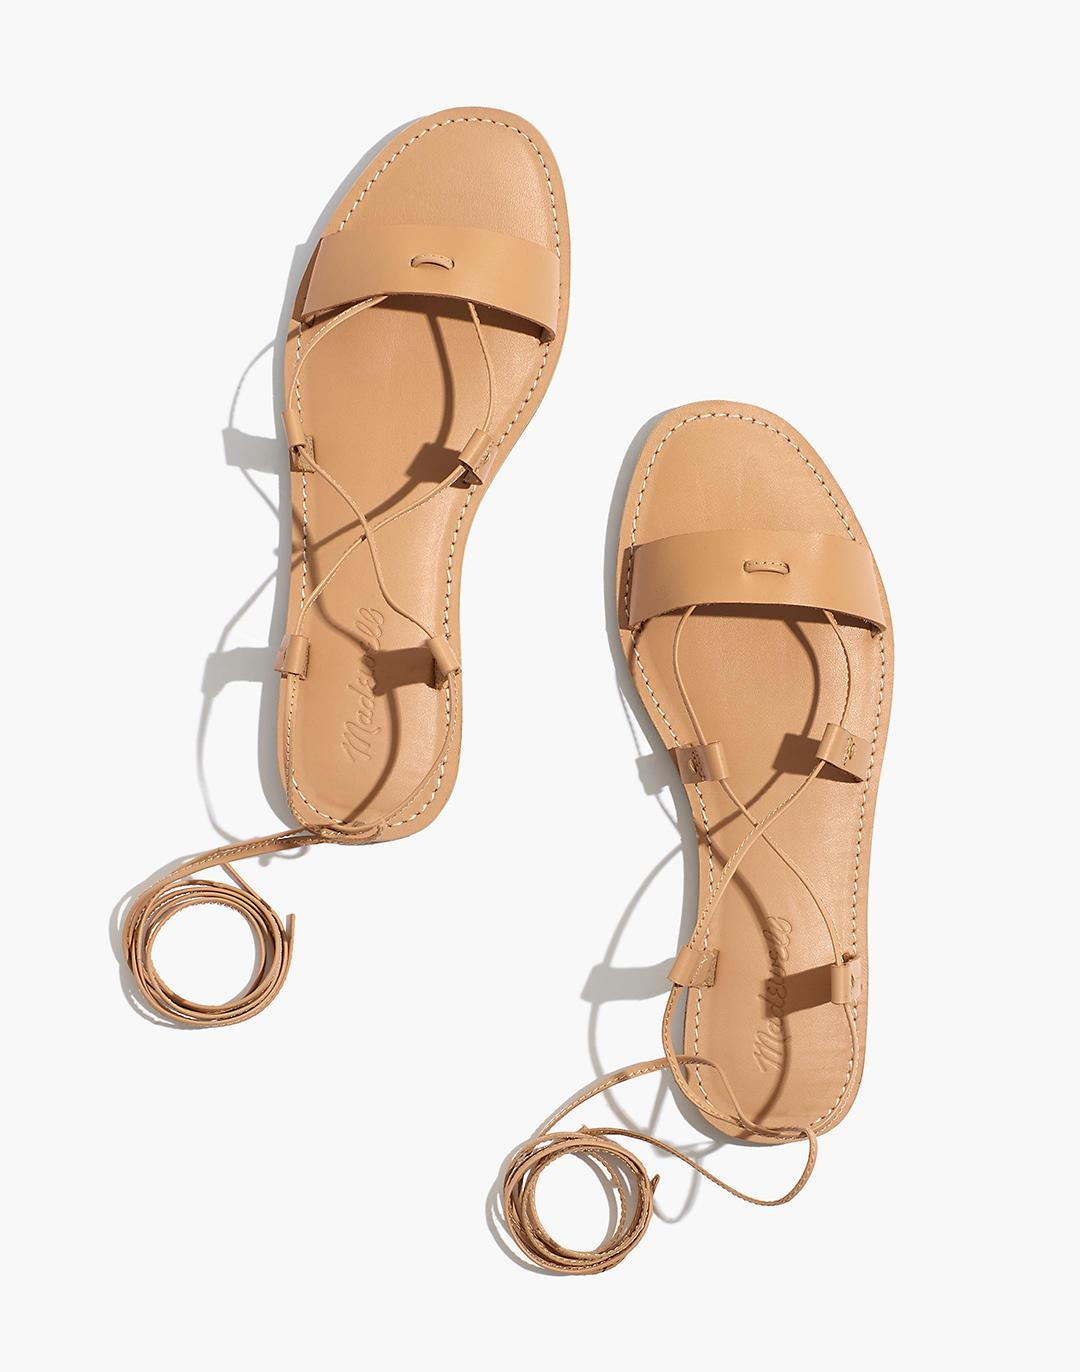 The Boardwalk Lace-Up Sandal in Leather